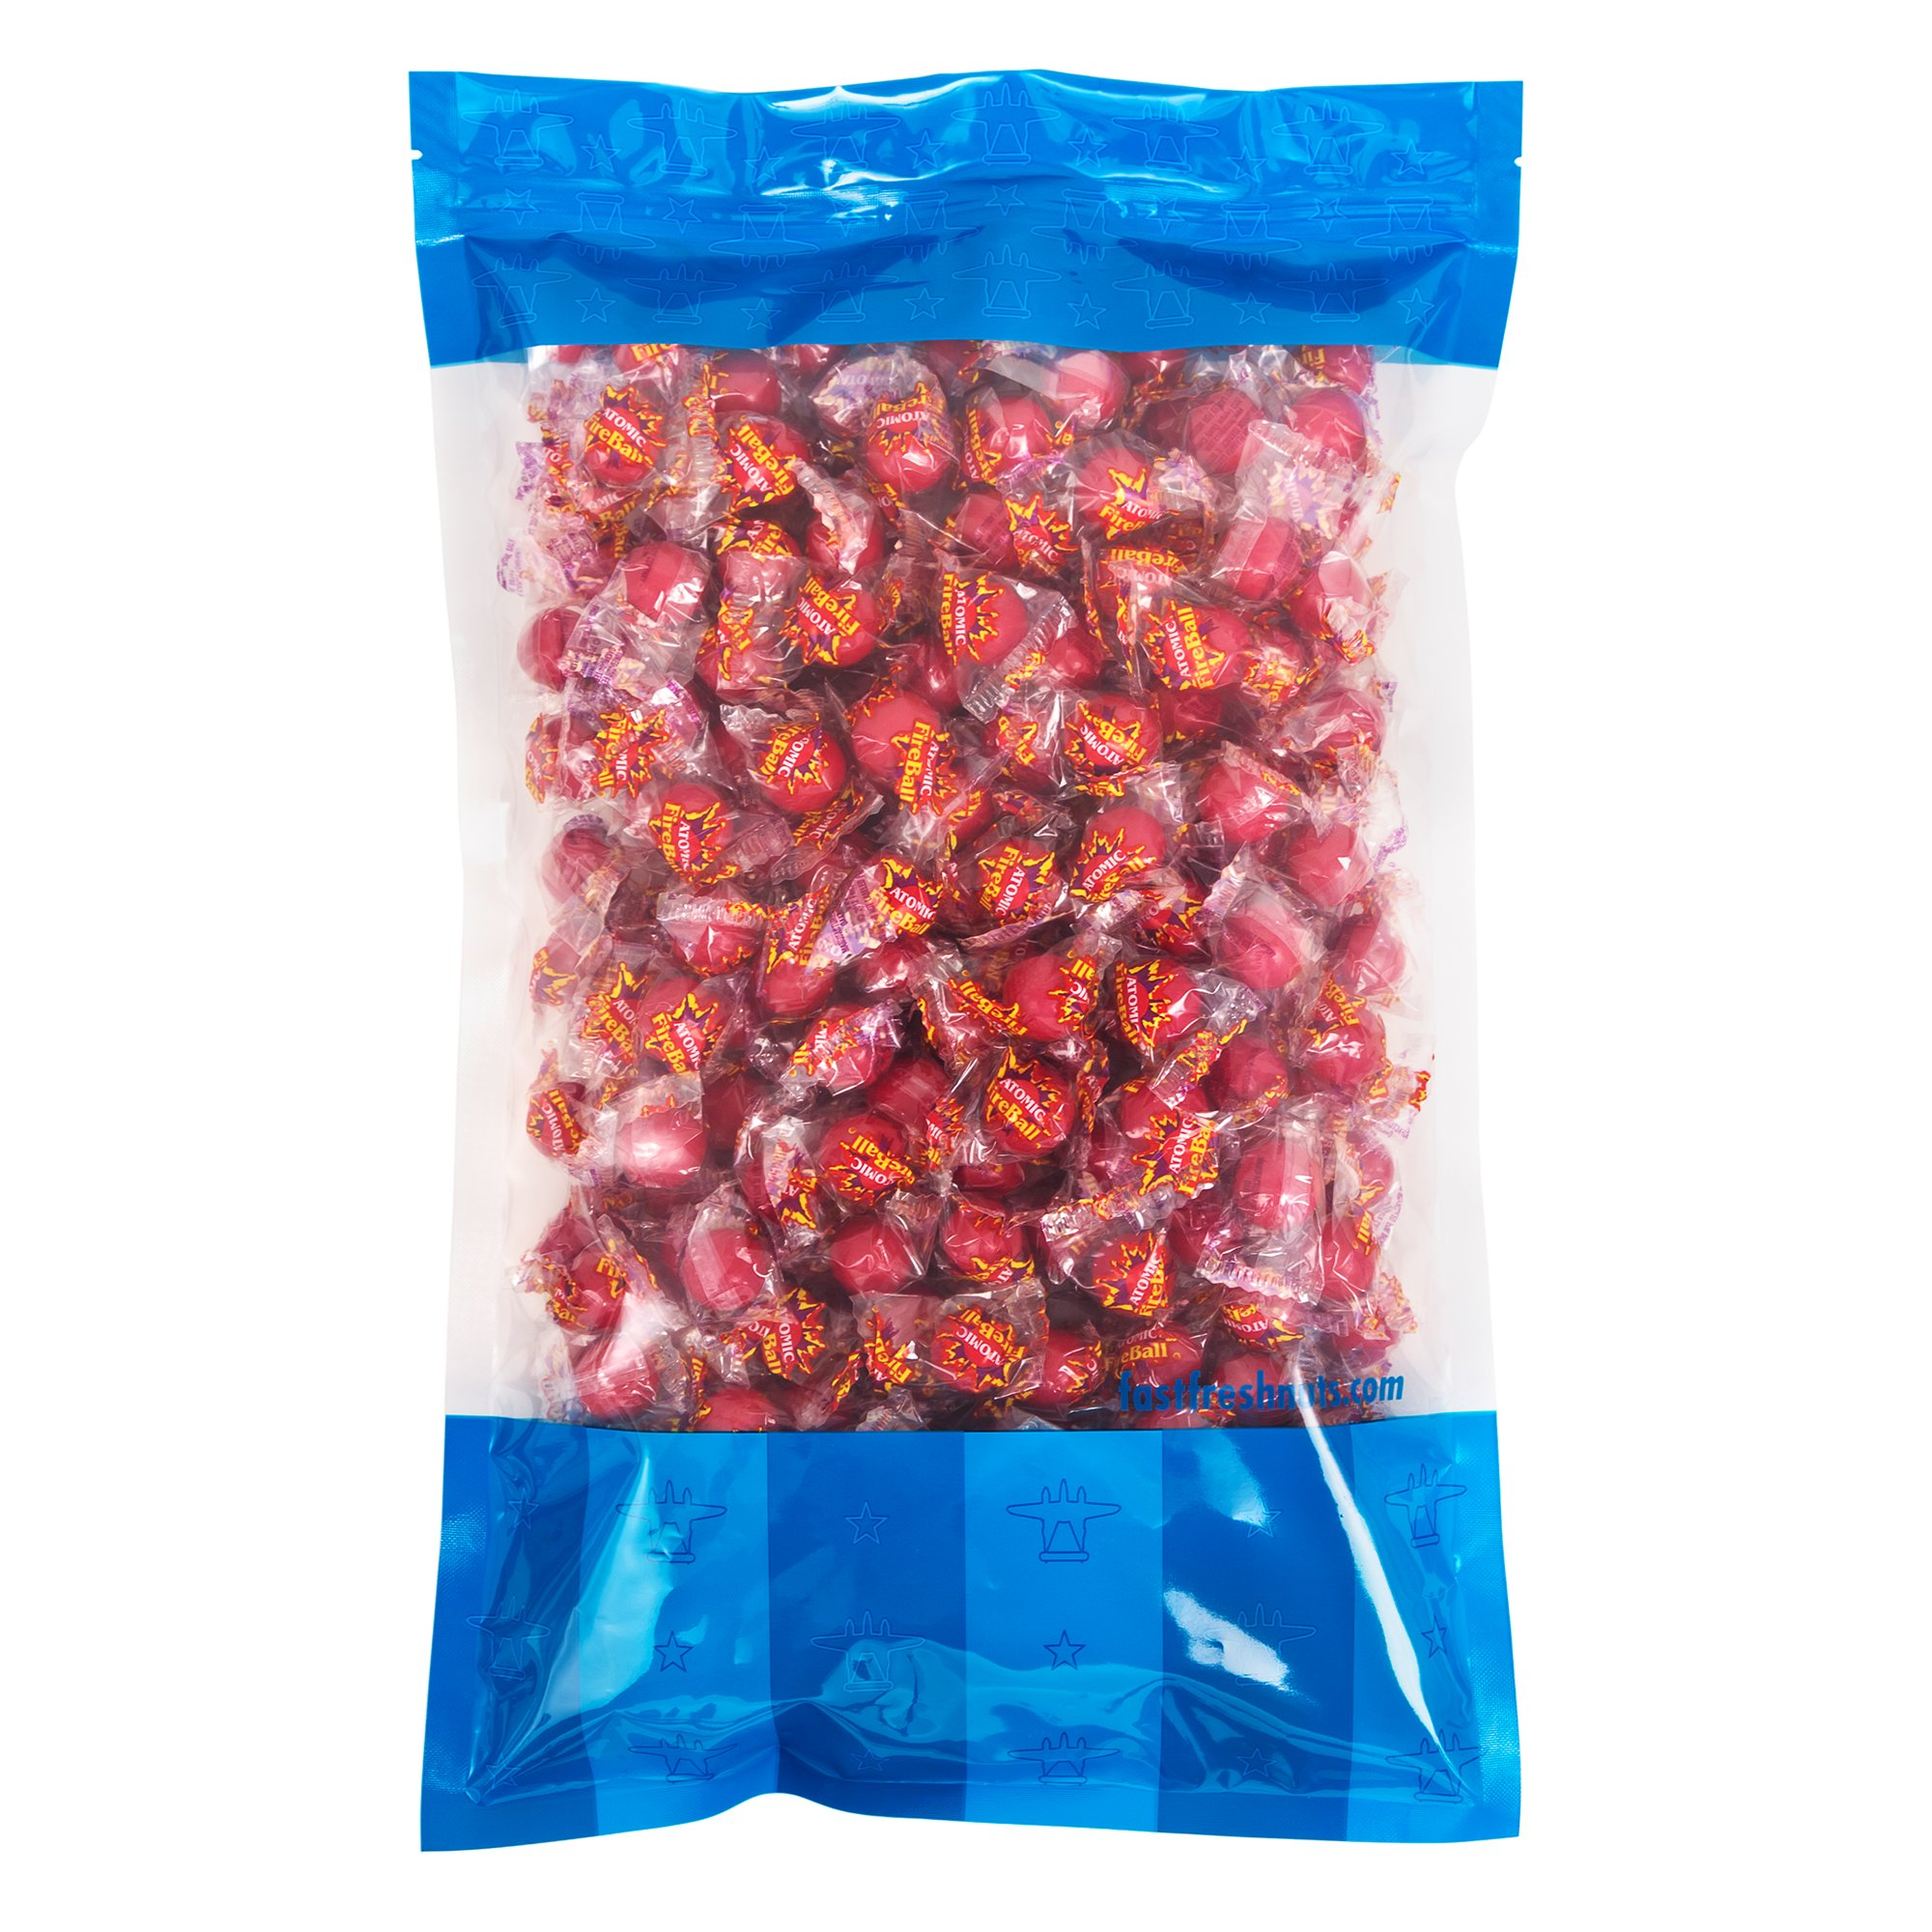 Bulk Atomic Fireballs - 5 lbs in a Resealable Bomber Bag - Perfect for Home and Office Candy Bowls - Wholesale - Vending Machine Refills and More! by Fast Fresh Nuts